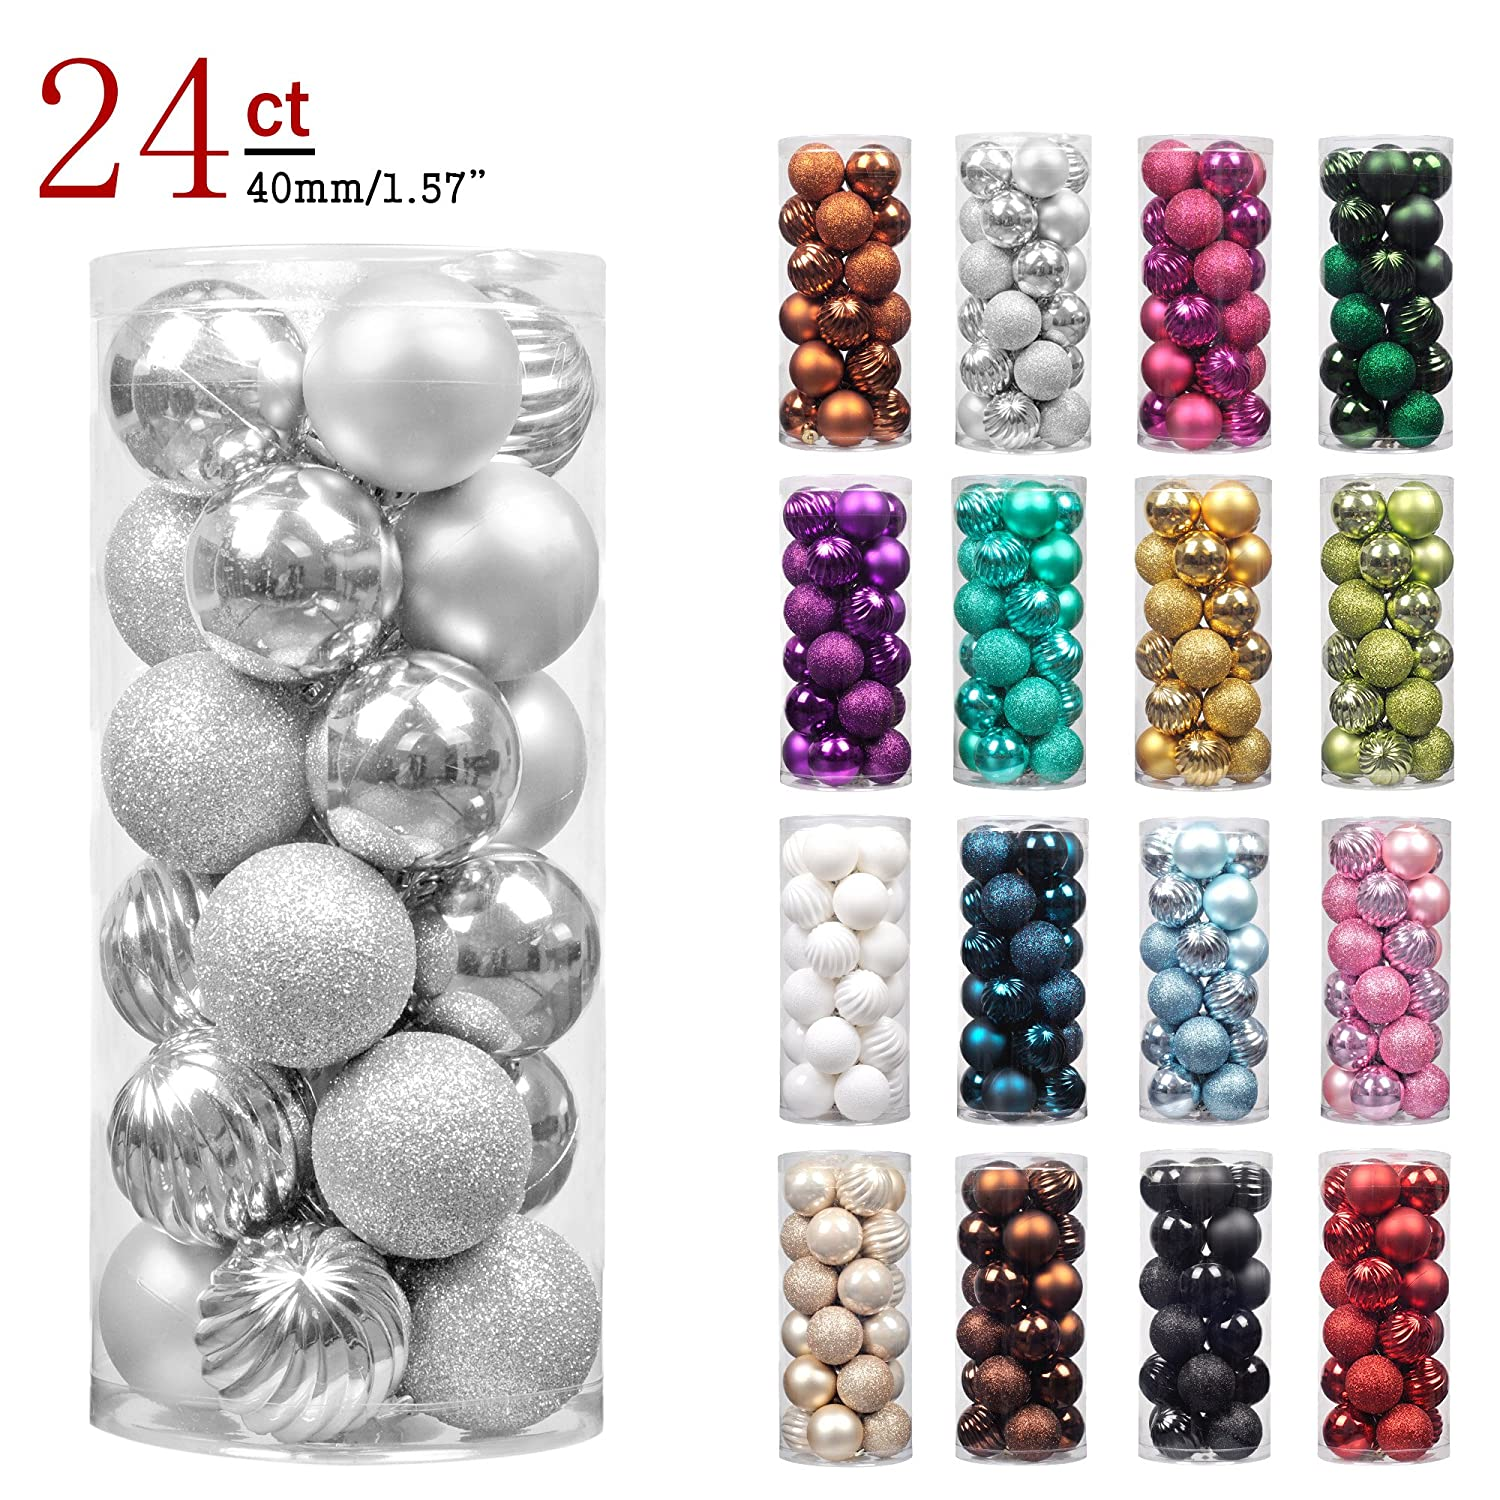 KI Store 24ct Christmas Ball Ornaments Shatterproof Christmas Decorations  Tree Balls SMALL for Holiday Wedding Party